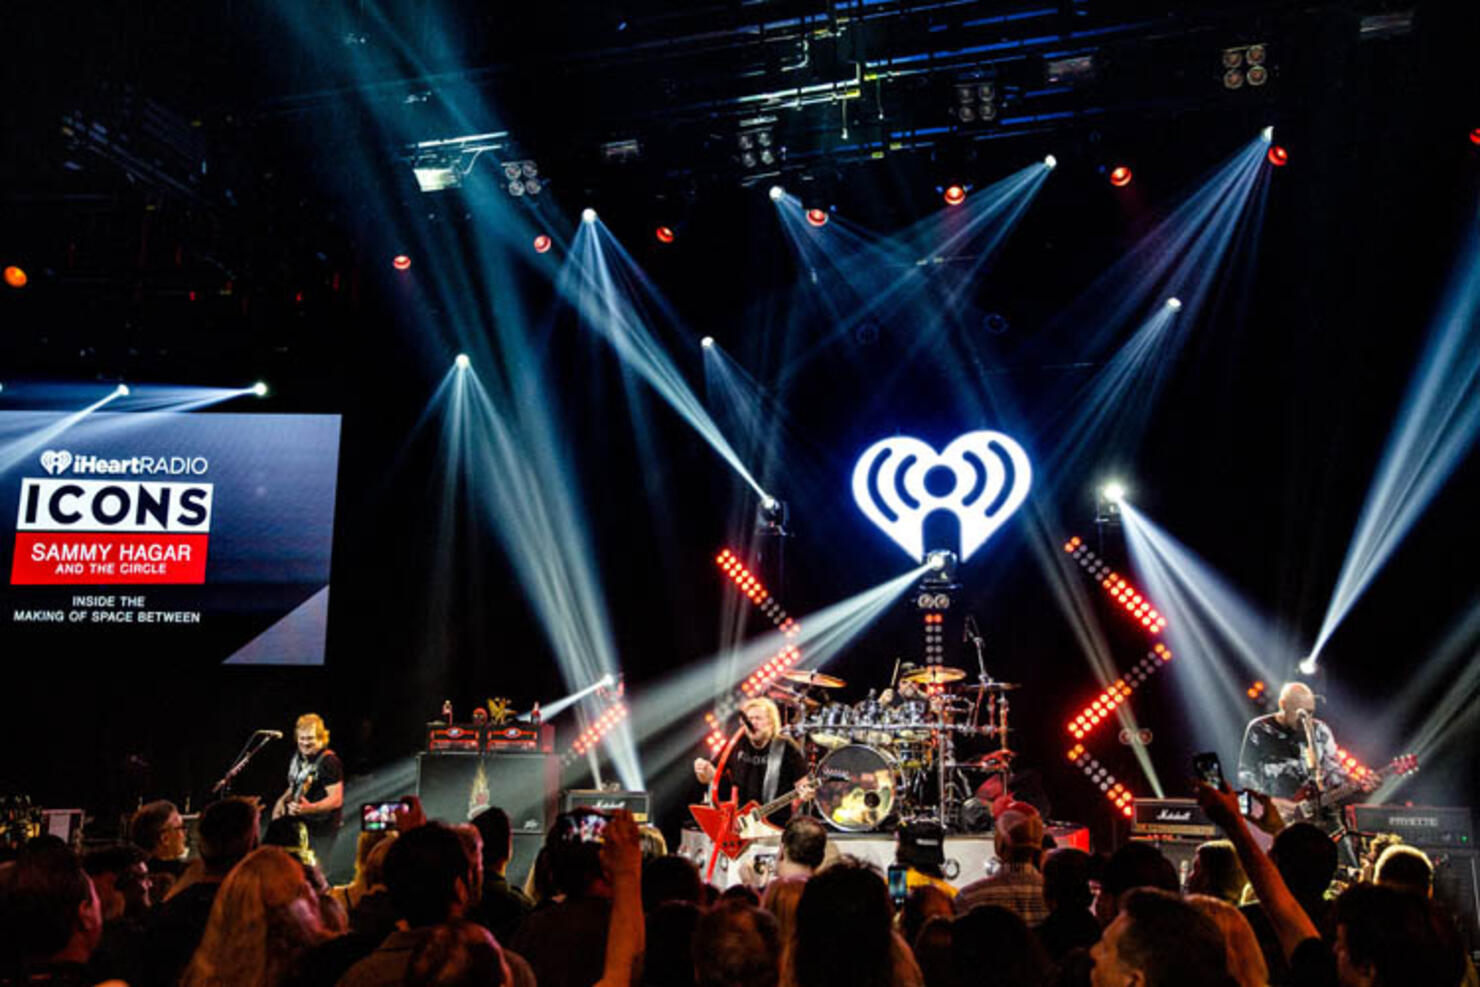 Photo: Wes and Alex for iHeartRadio